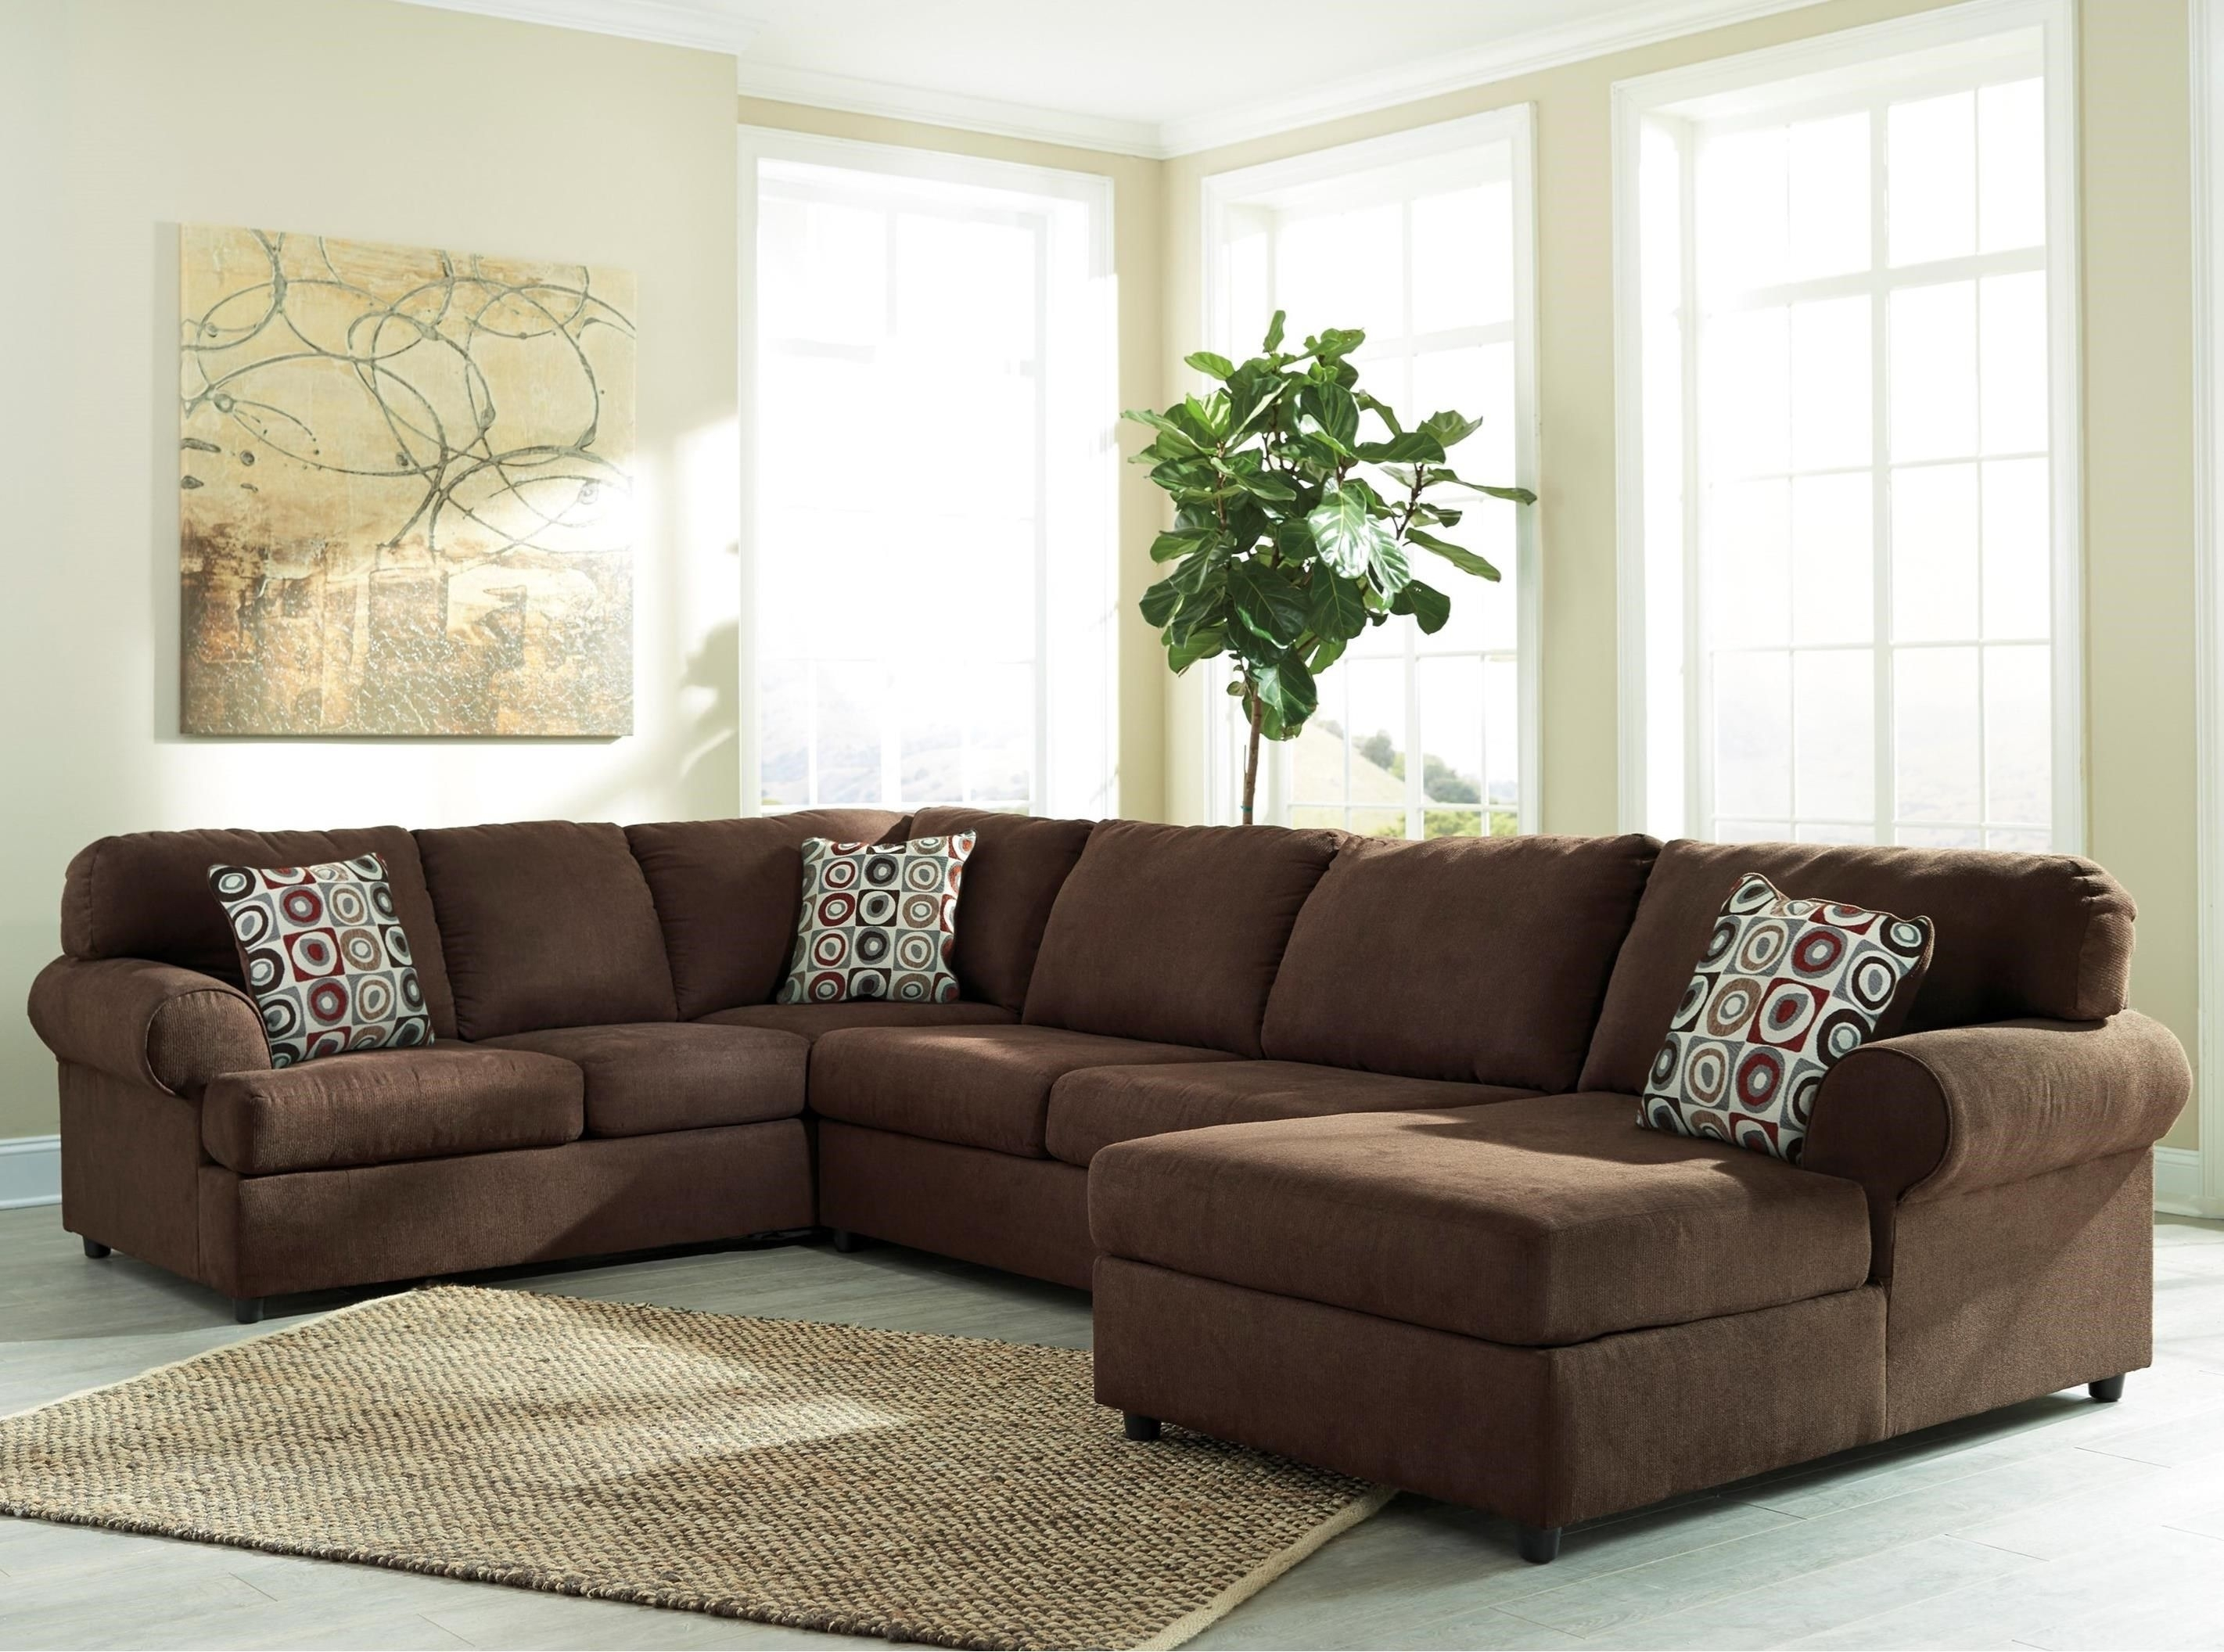 Jayceon 3-Piece Sectional With Chaisesignature Designashley in Royal Furniture Sectional Sofas (Image 6 of 10)